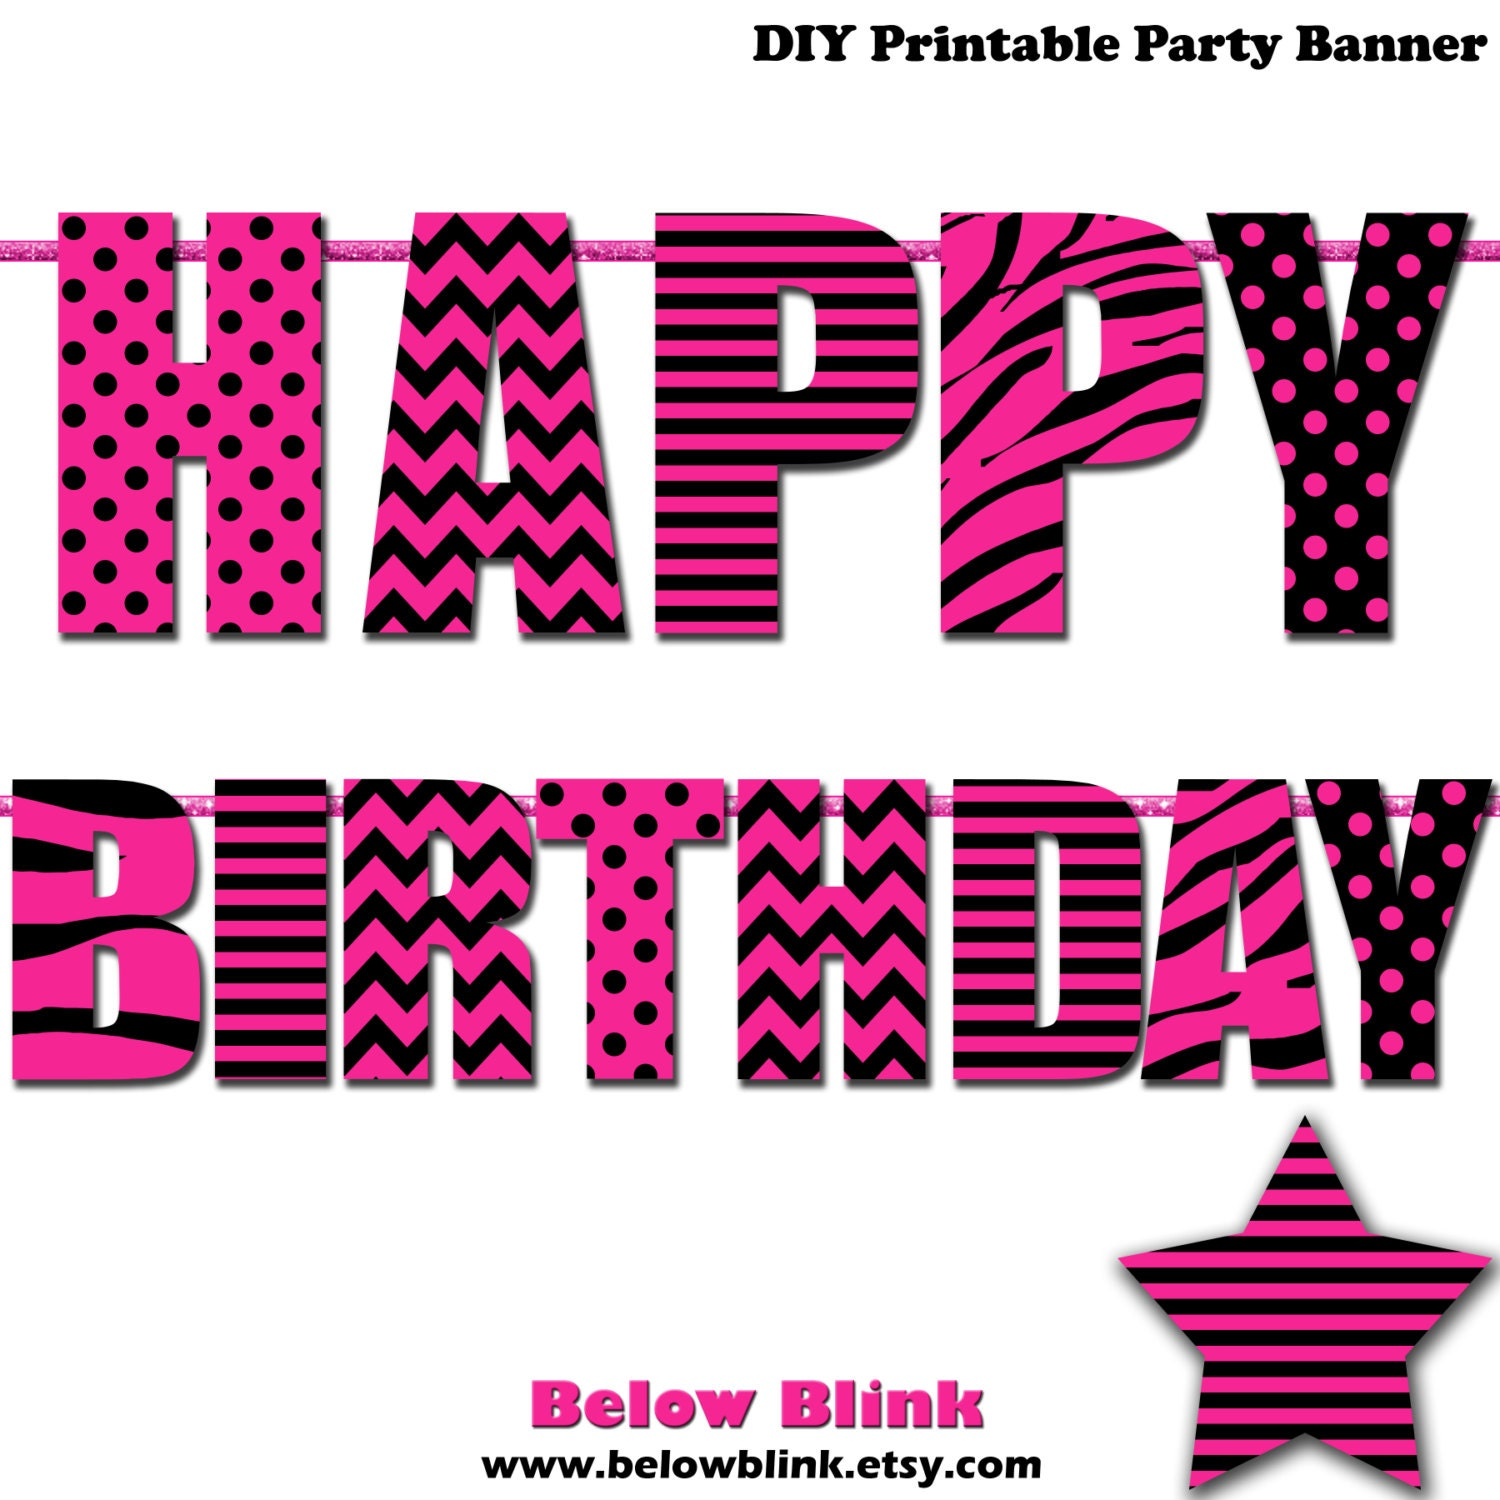 Nifty image with regard to printable happy birthday banners